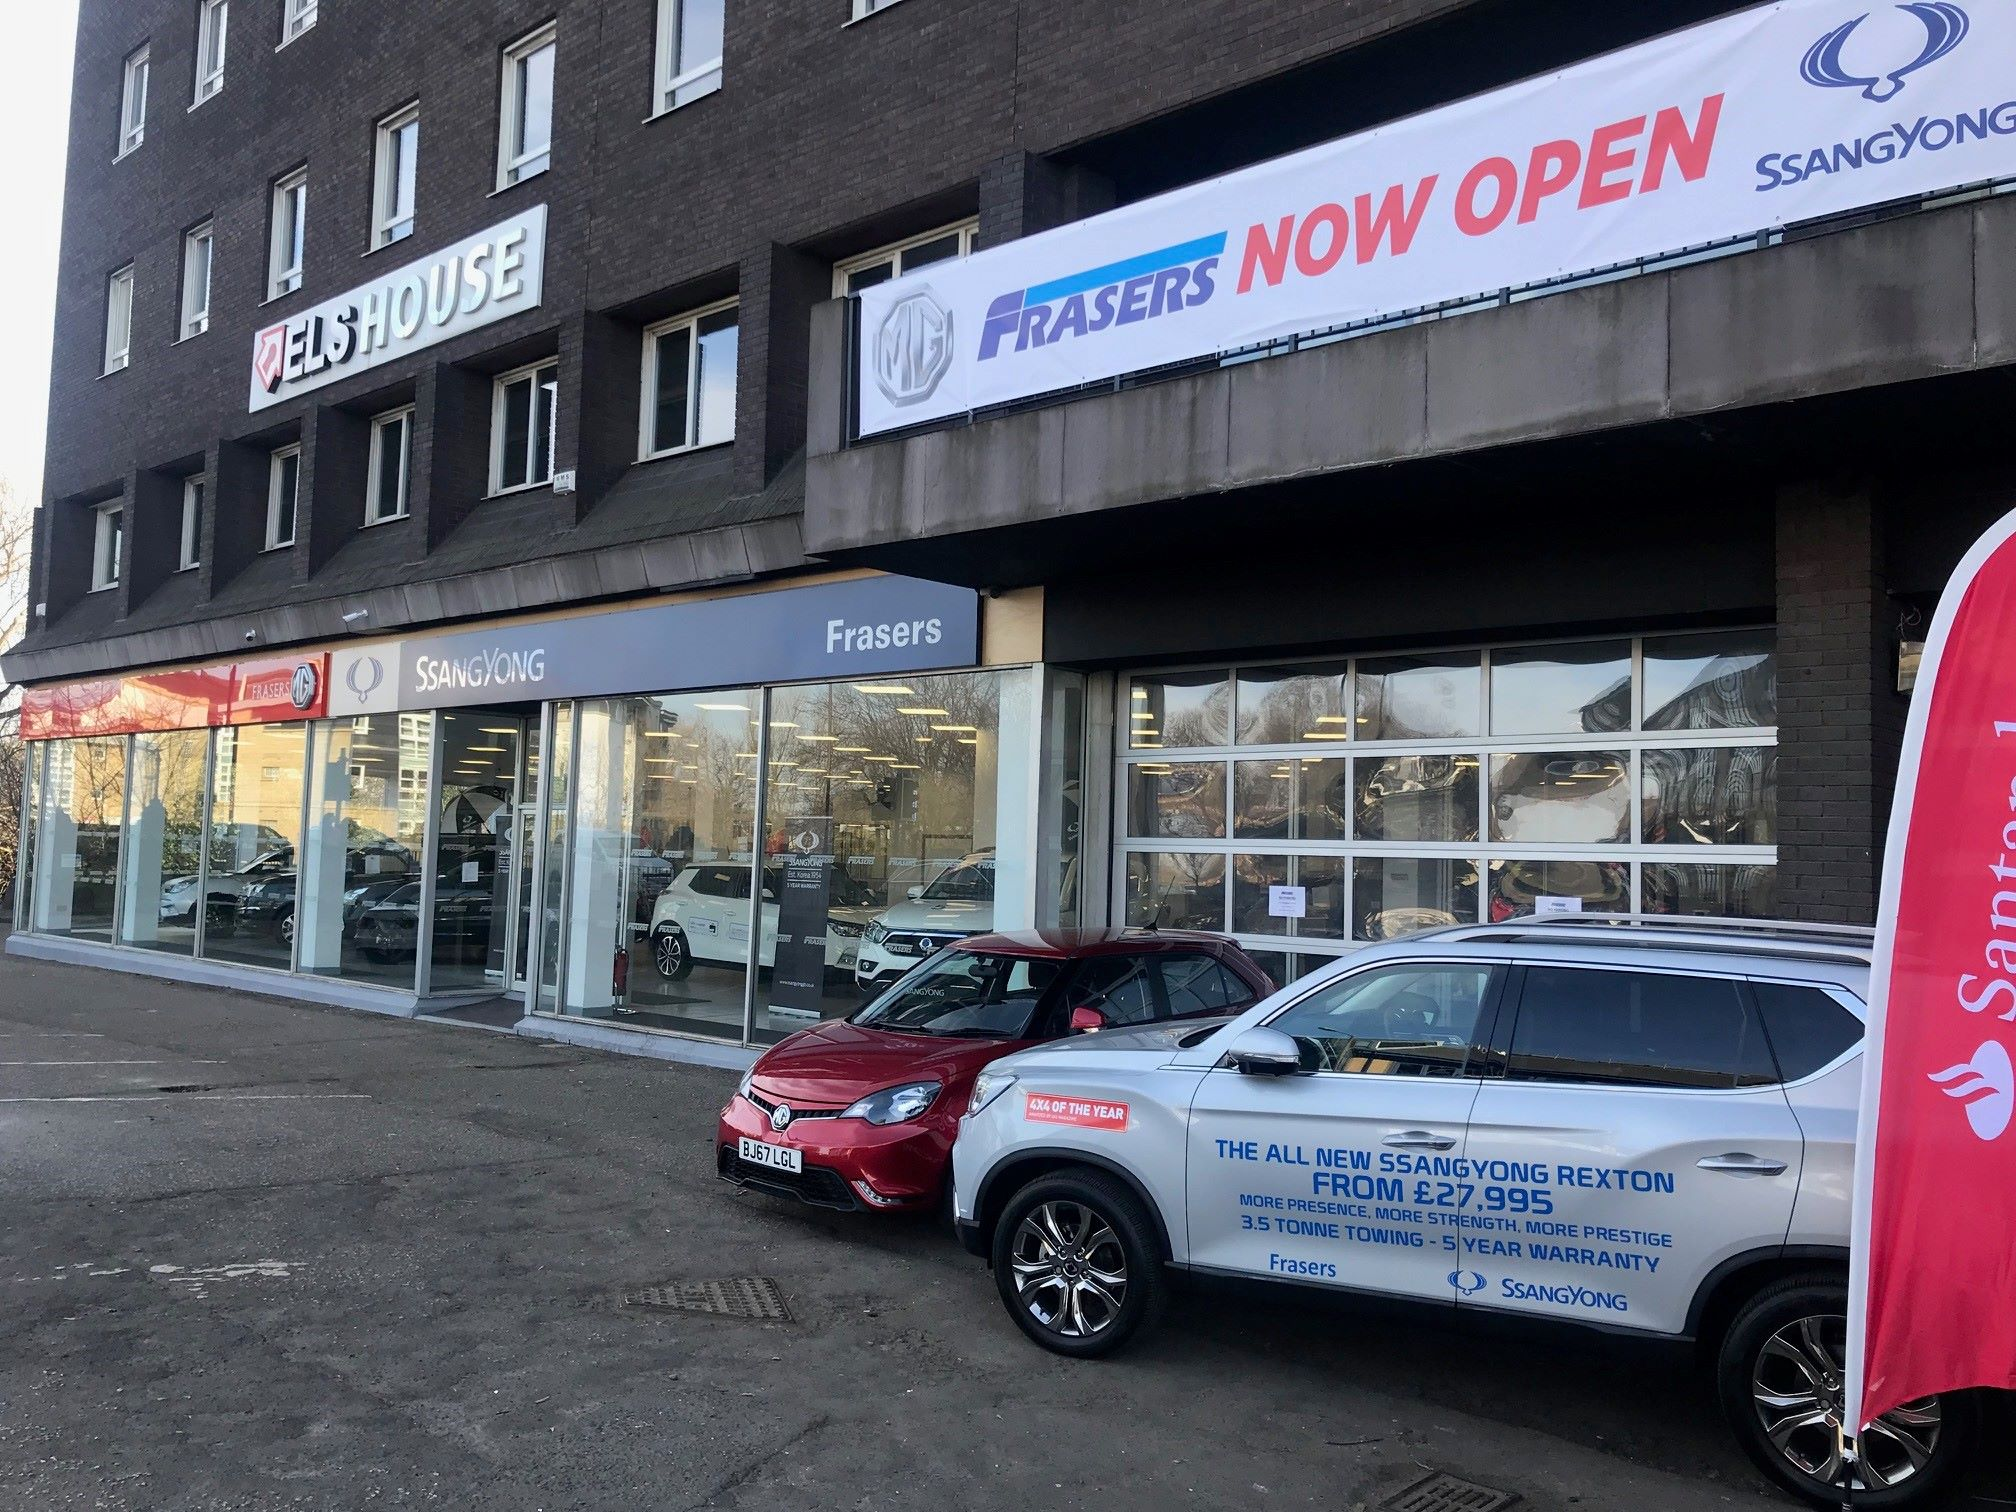 Frasers Edinburgh is Now Open!